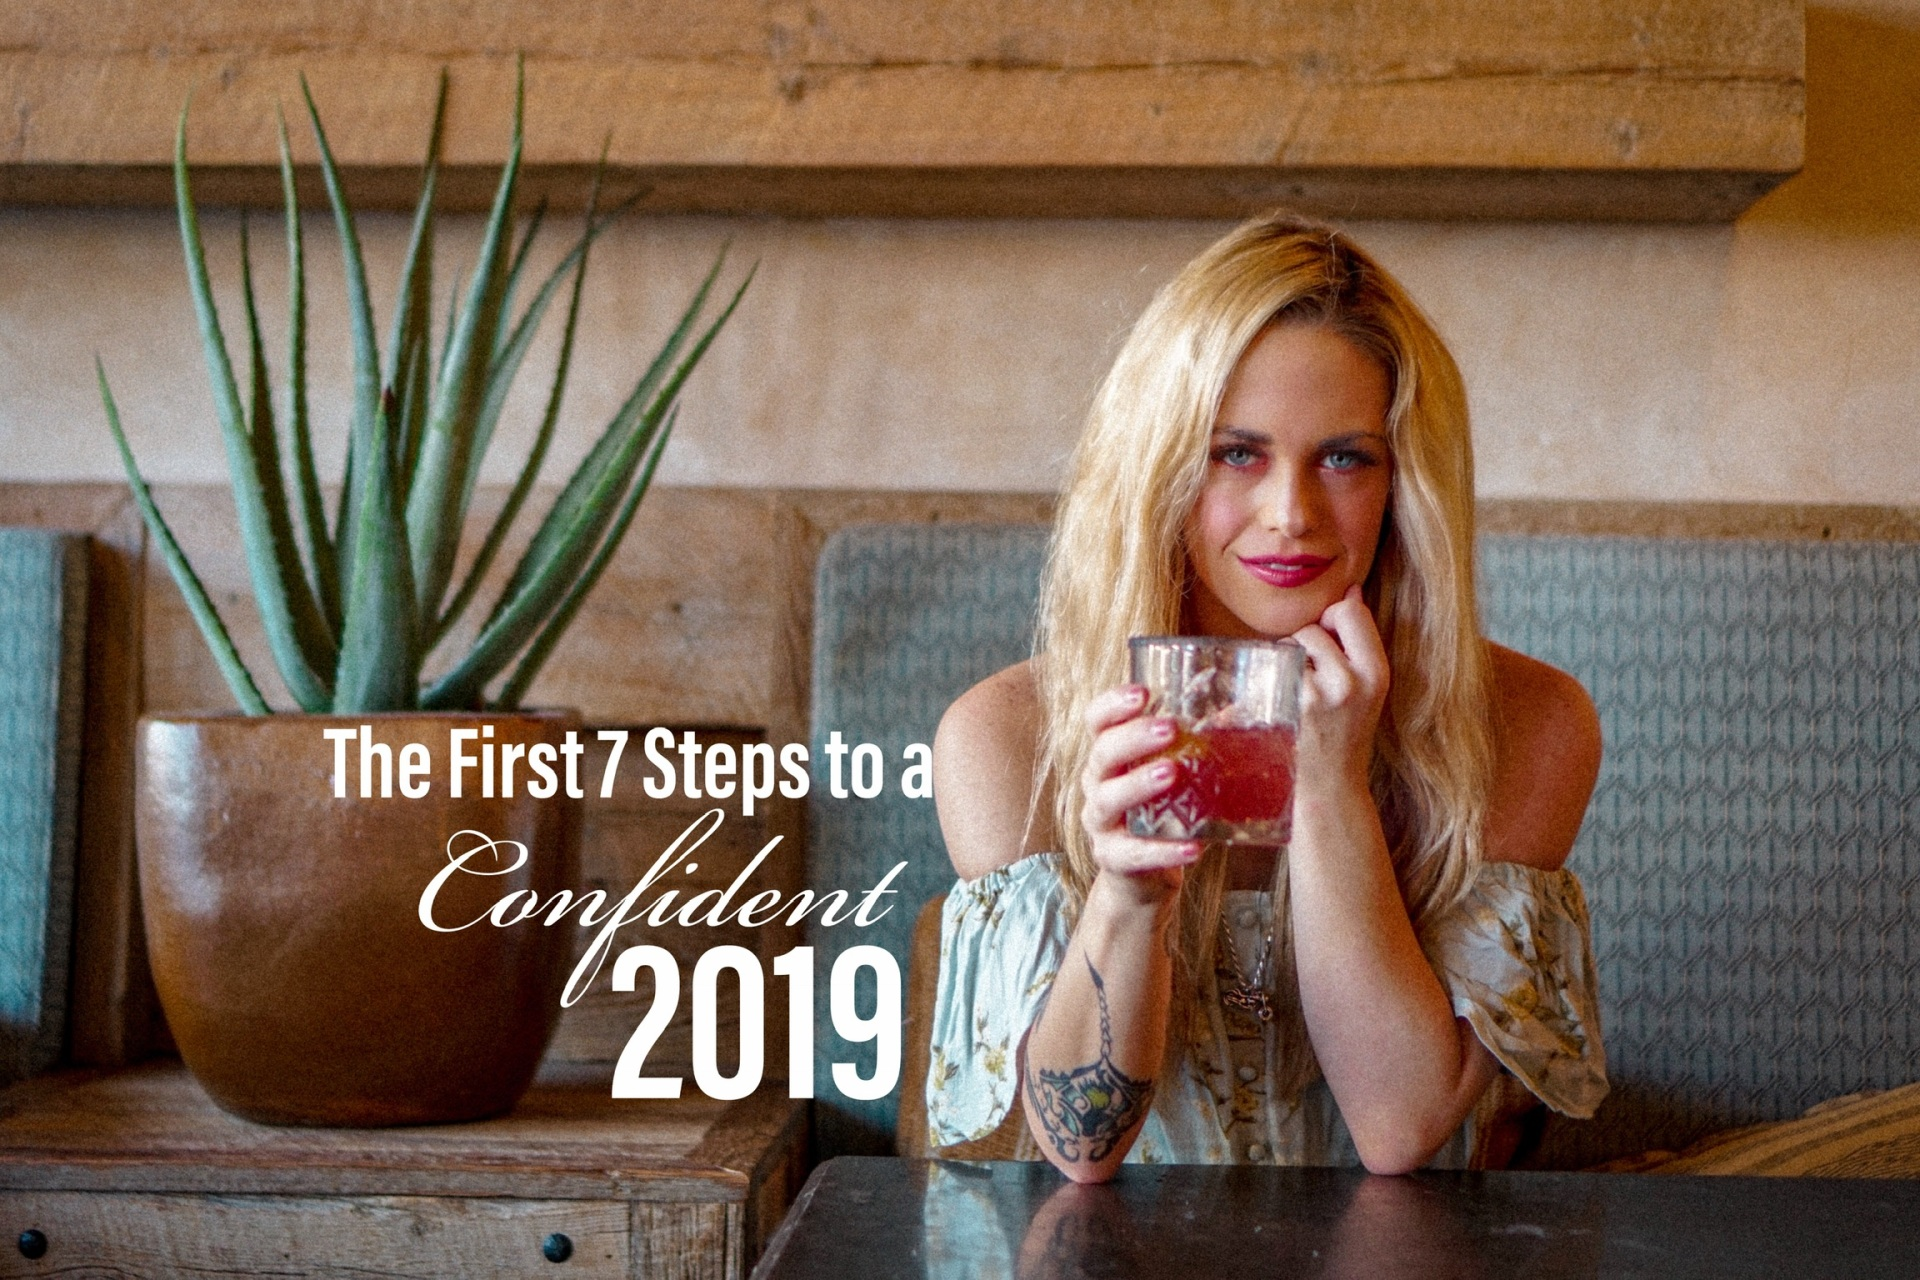 The First 7 Steps to a Confident 2019!